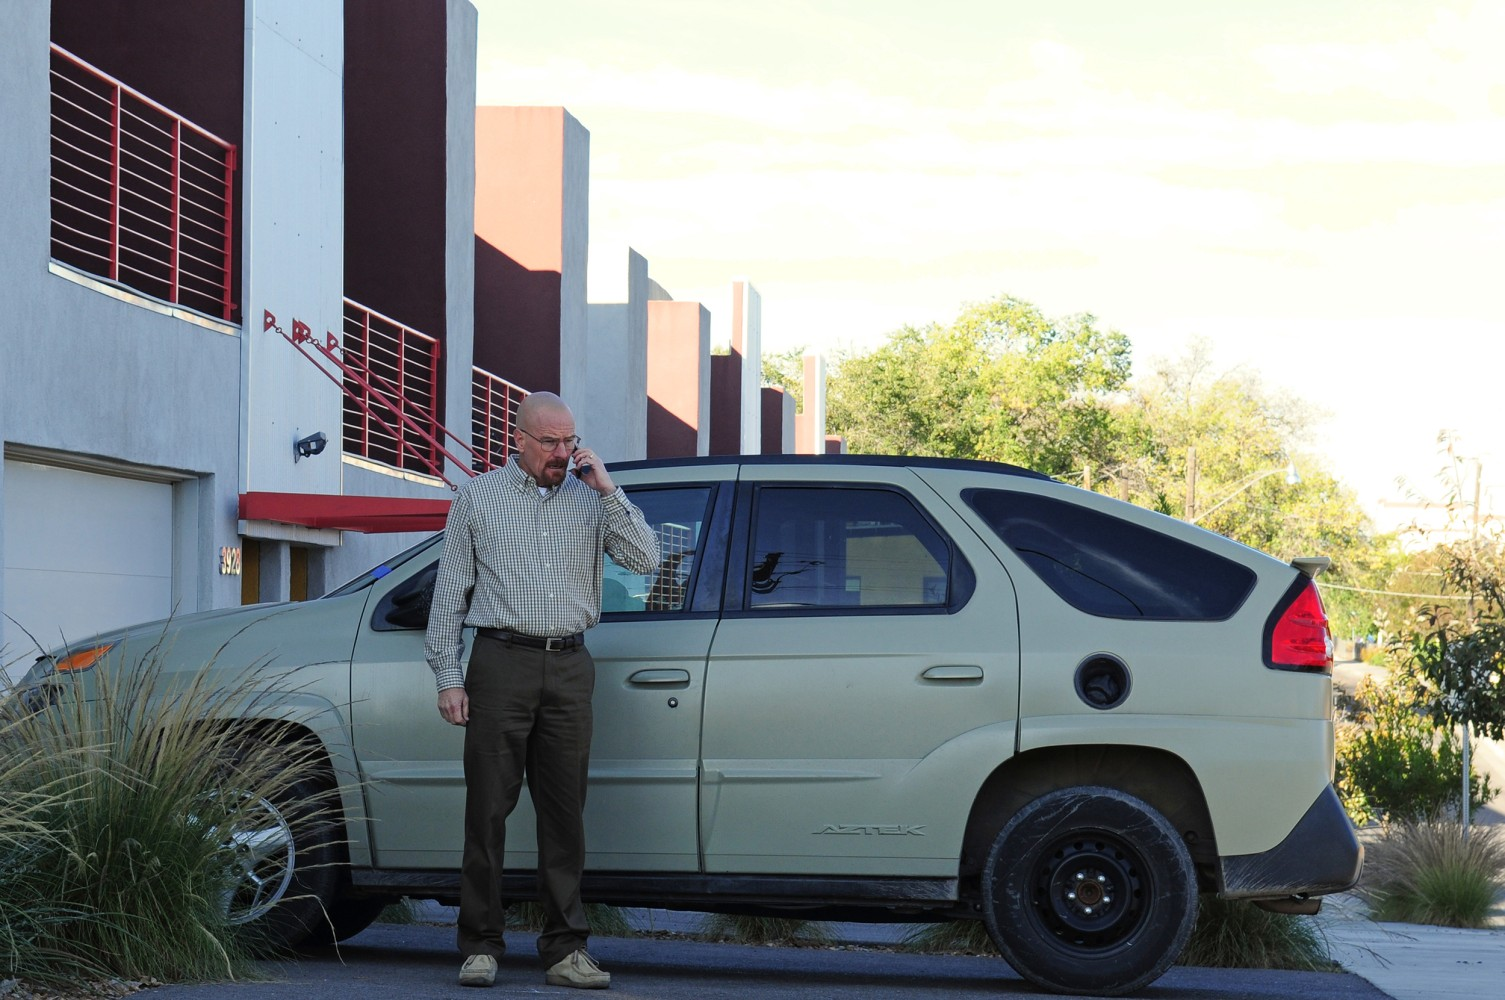 Buying Bad Young Used Car Purchasers Want Walter White